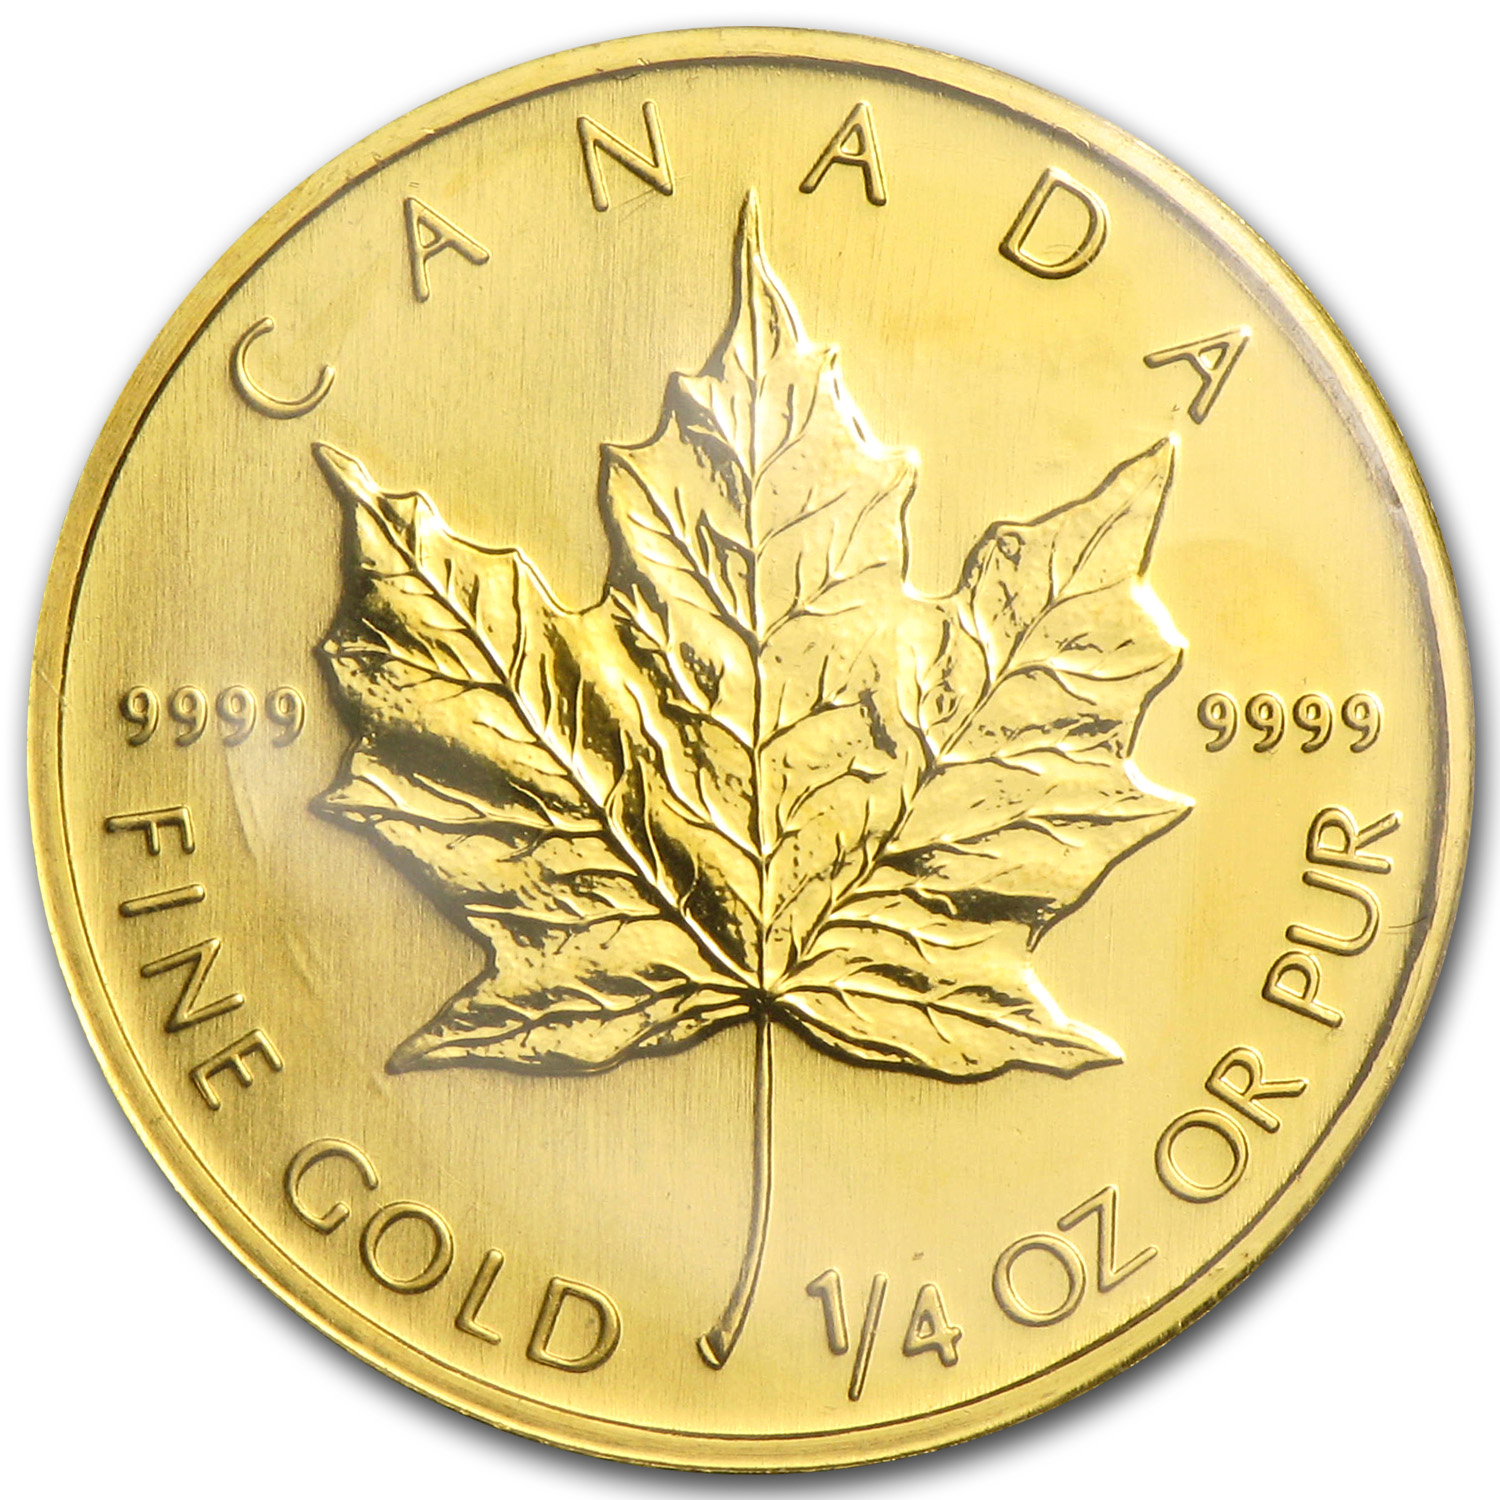 2007 Canada 1/4 oz Gold Maple Leaf BU